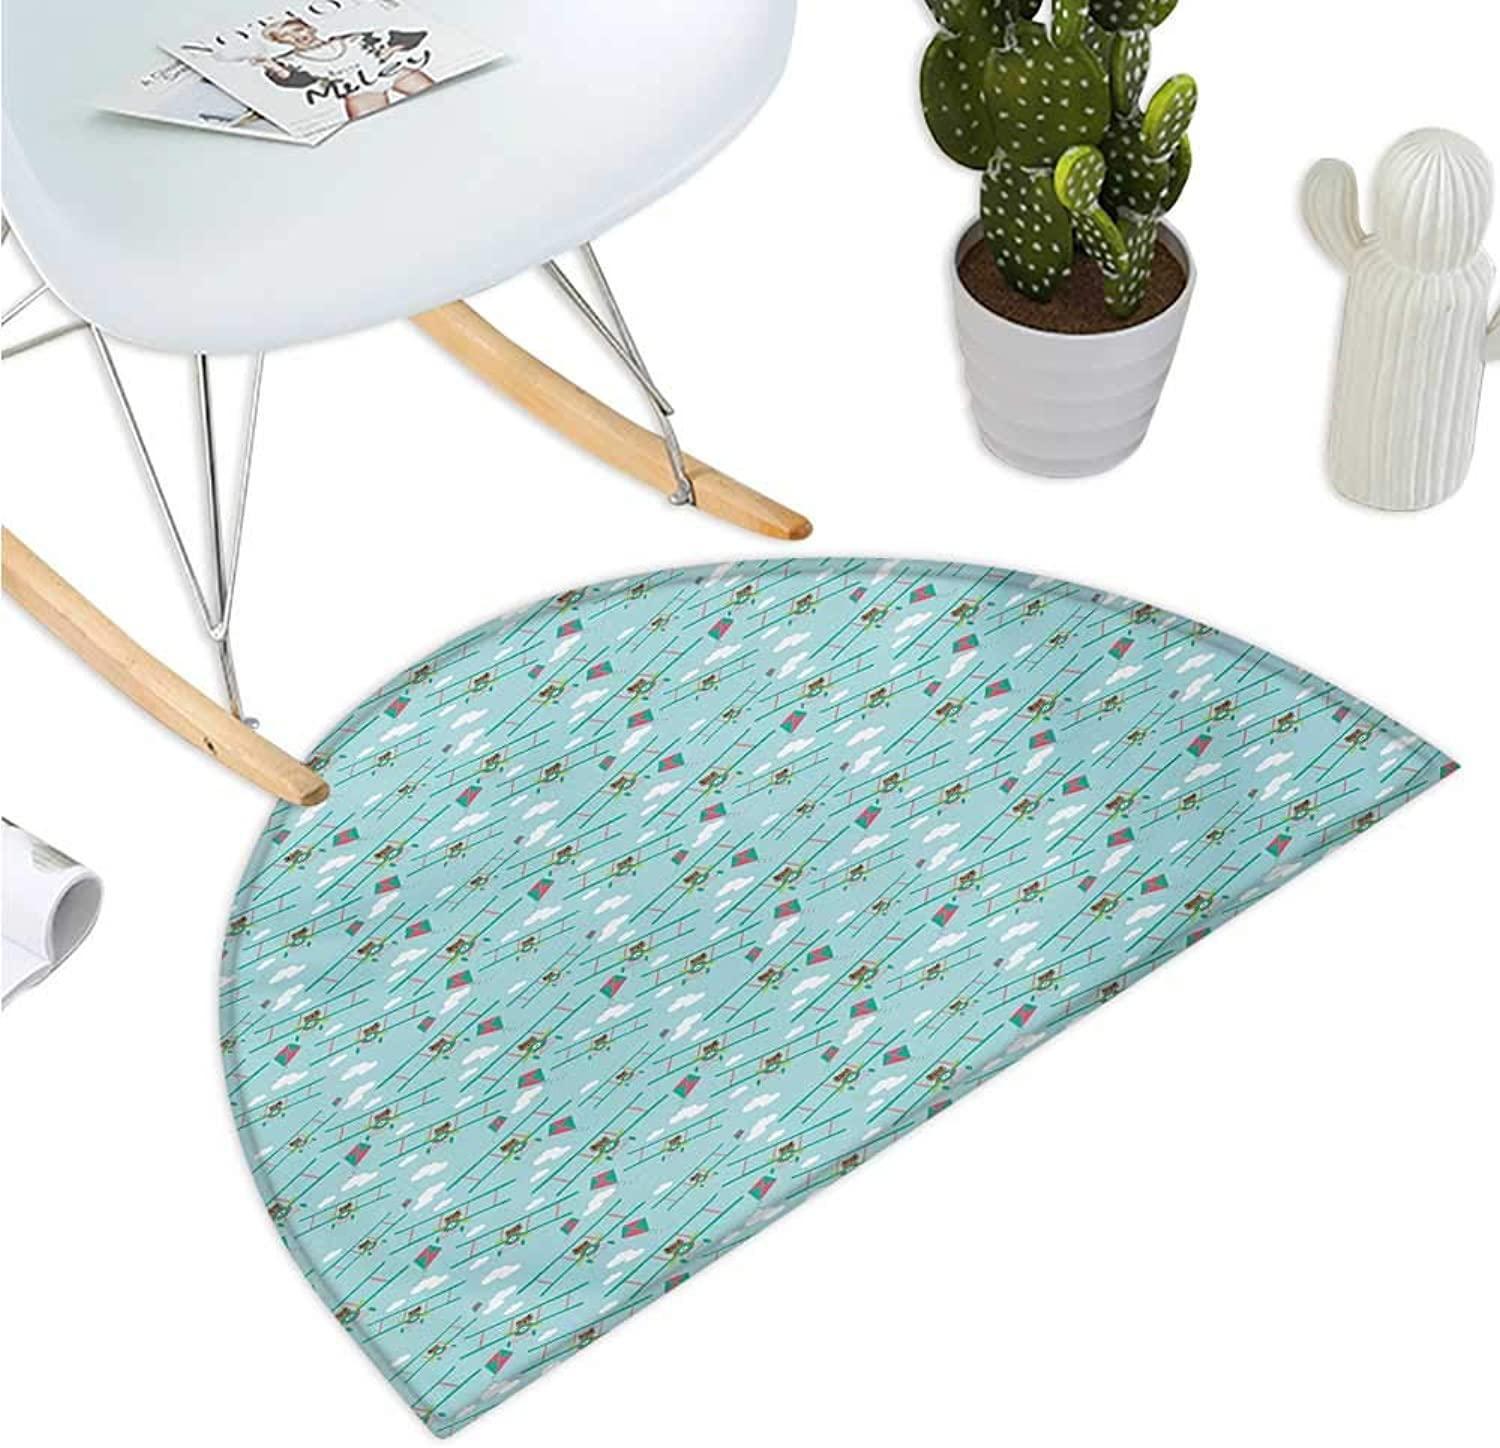 Baby Semicircular Cushion Funny Bear on Ladder Trying to Reach The Kite in Sky Clouds Kids Nursery Cartoon Bathroom Mat H 35.4  xD 53.1  Turquoise Teal